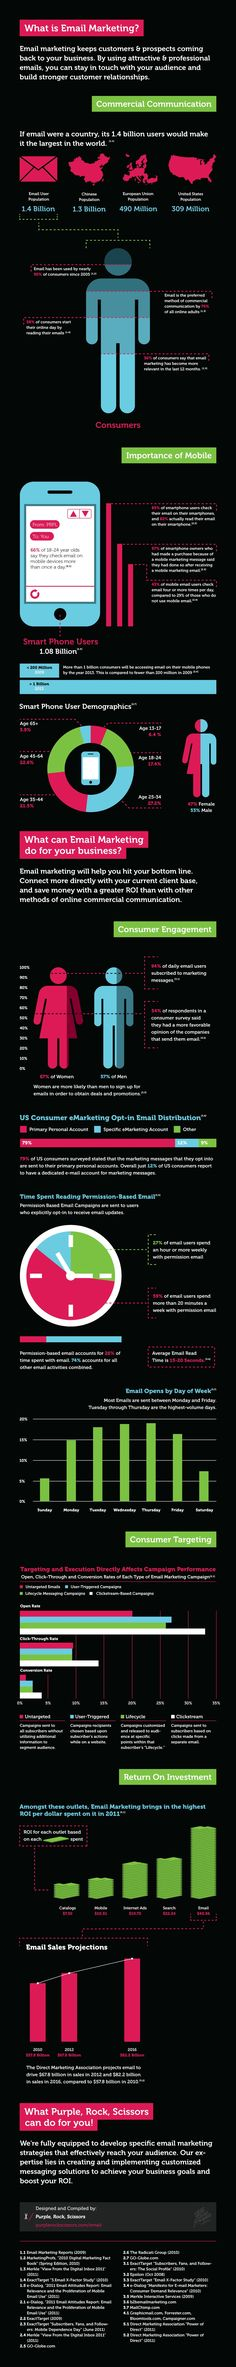 What is email marketing - commercial communication [infographic]